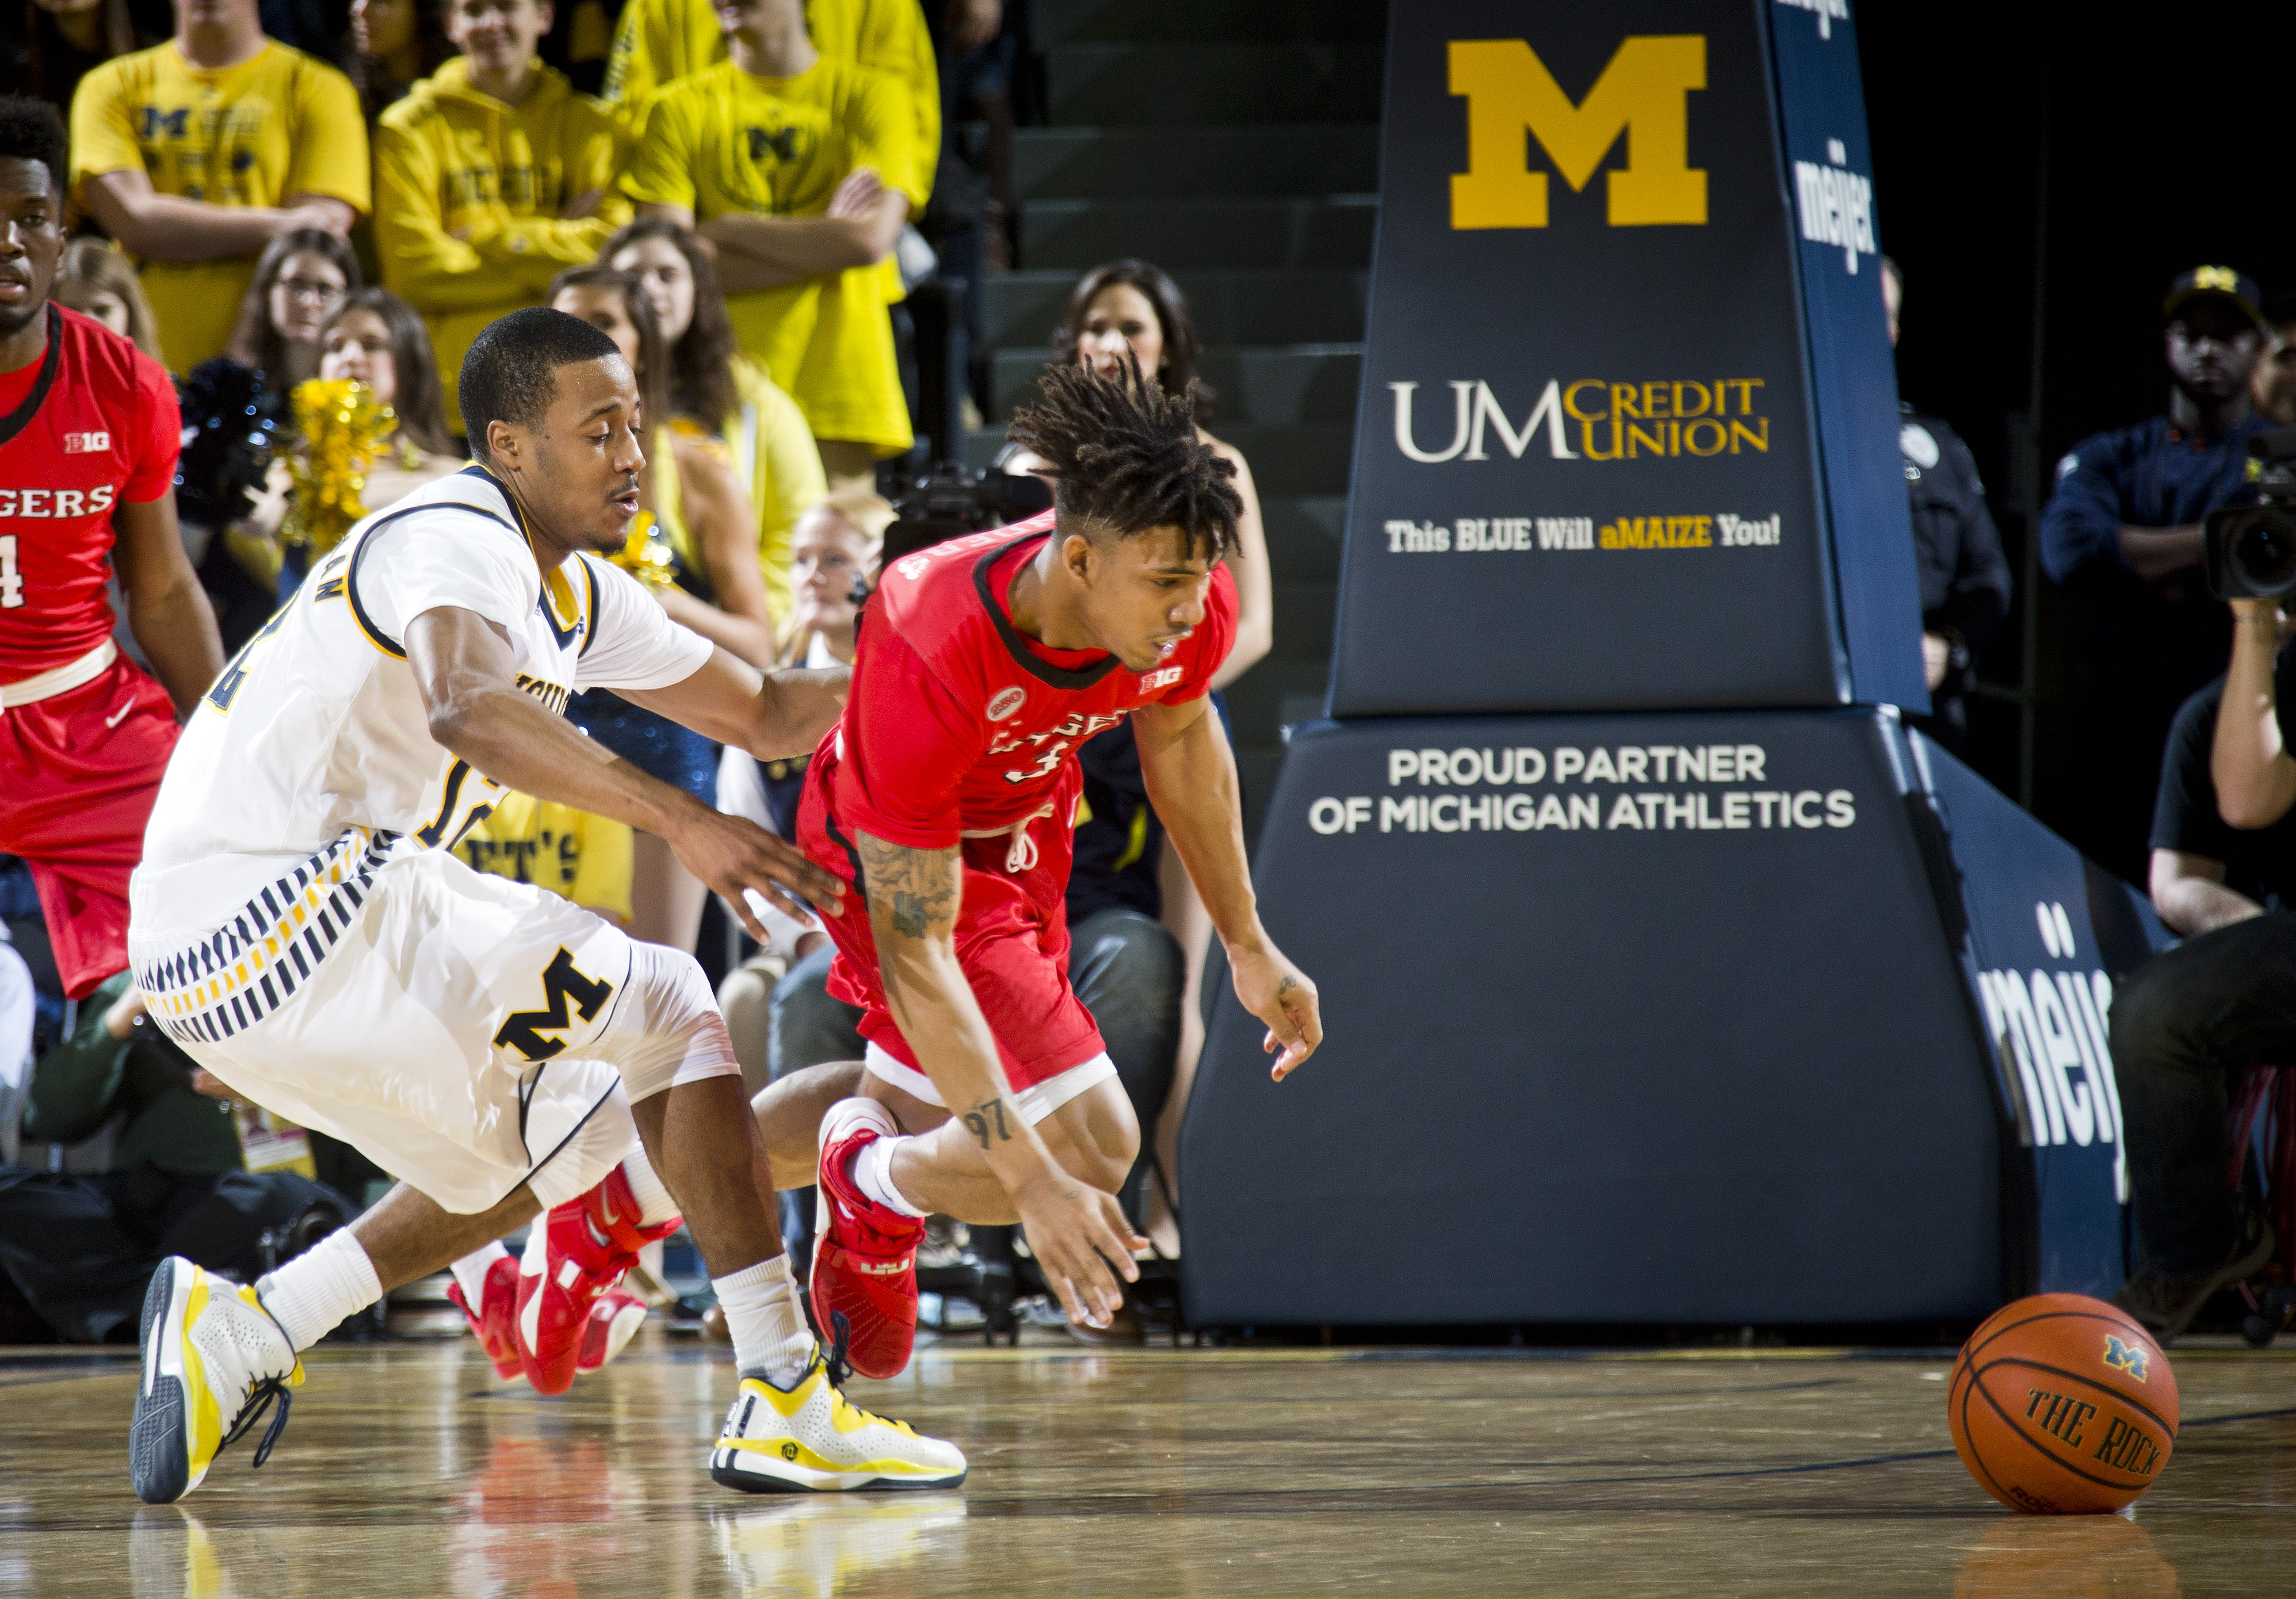 Michigan guard Muhammad-Ali Abdur-Rahkman, left, and Rutgers guard Corey Sanders contest for a loose ball in the first half of an NCAA college basketball game at Crisler Center in Ann Arbor, Mich., Wednesday, Jan. 27, 2016. (AP Photo/Tony Ding)